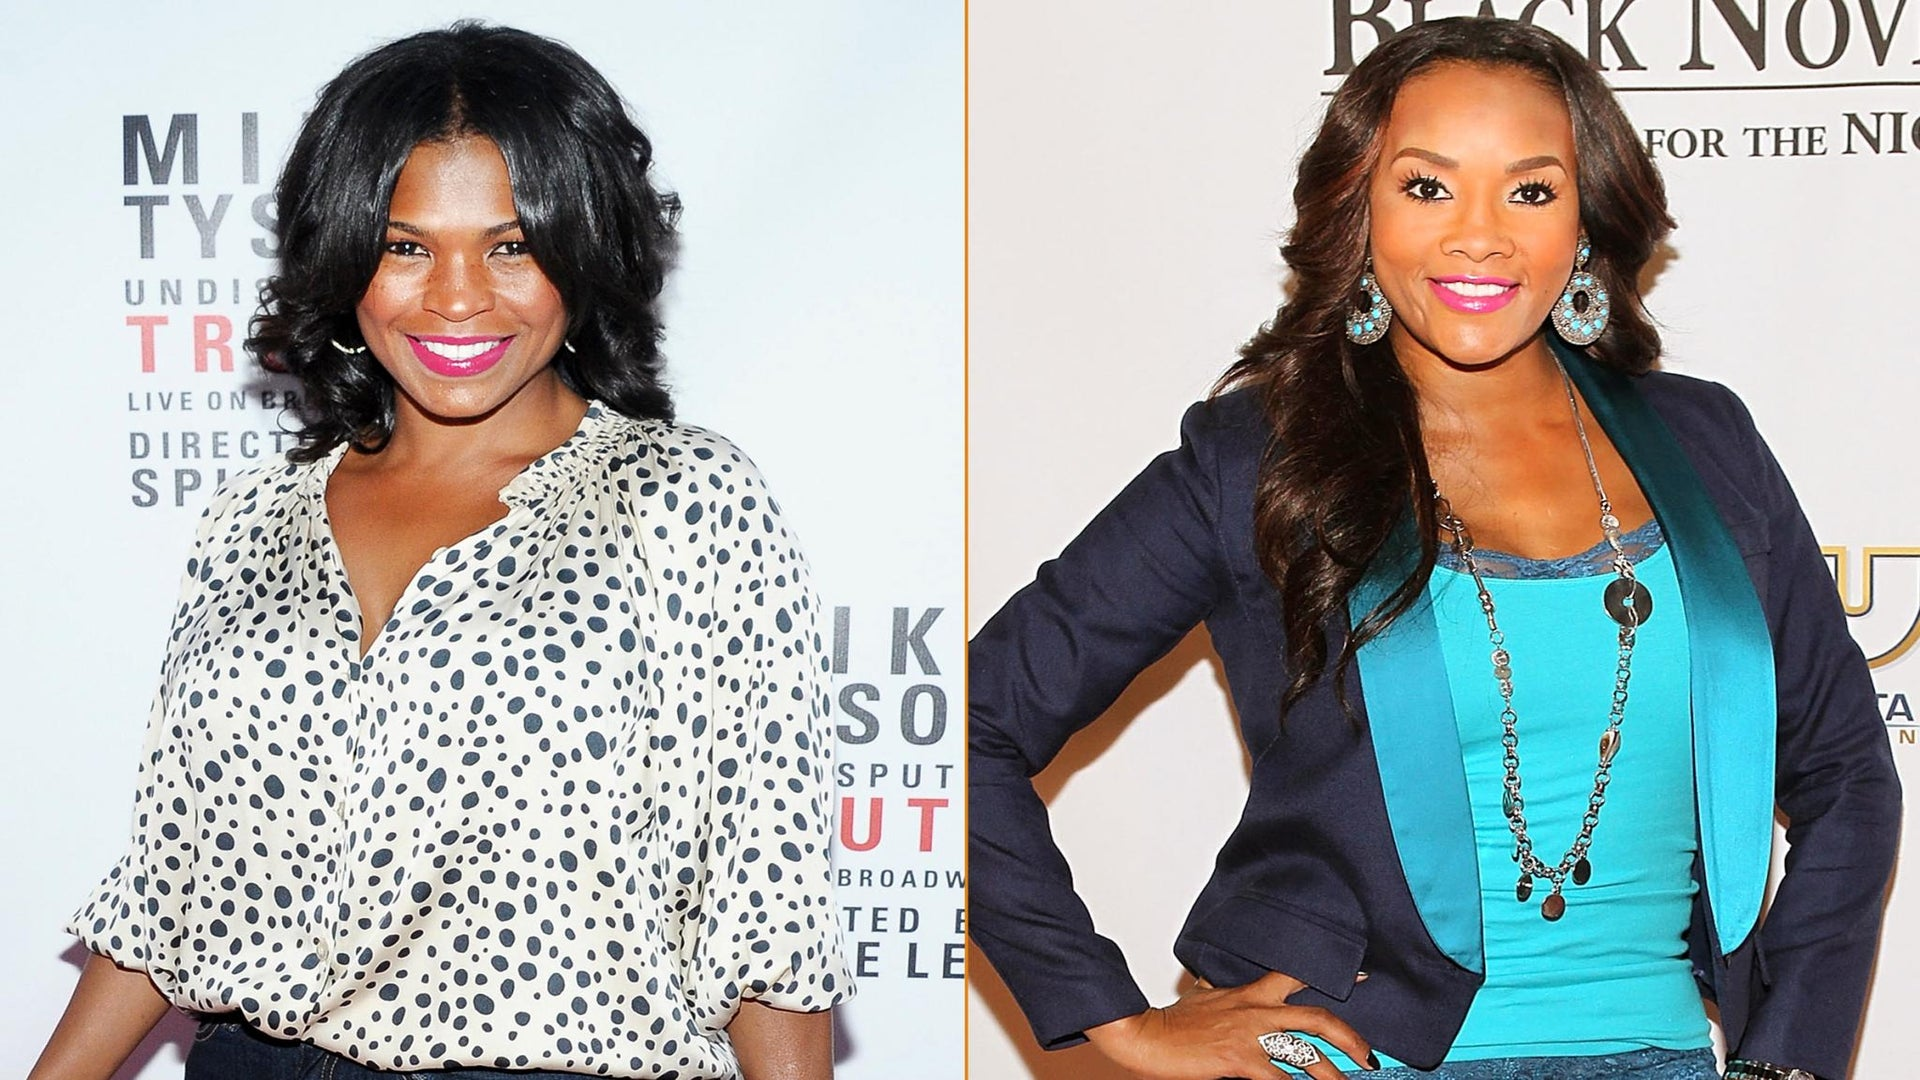 EXCLUSIVE: Nia Long & Vivica A. Fox Talk <i>Soul Food</i> 15 Years Later